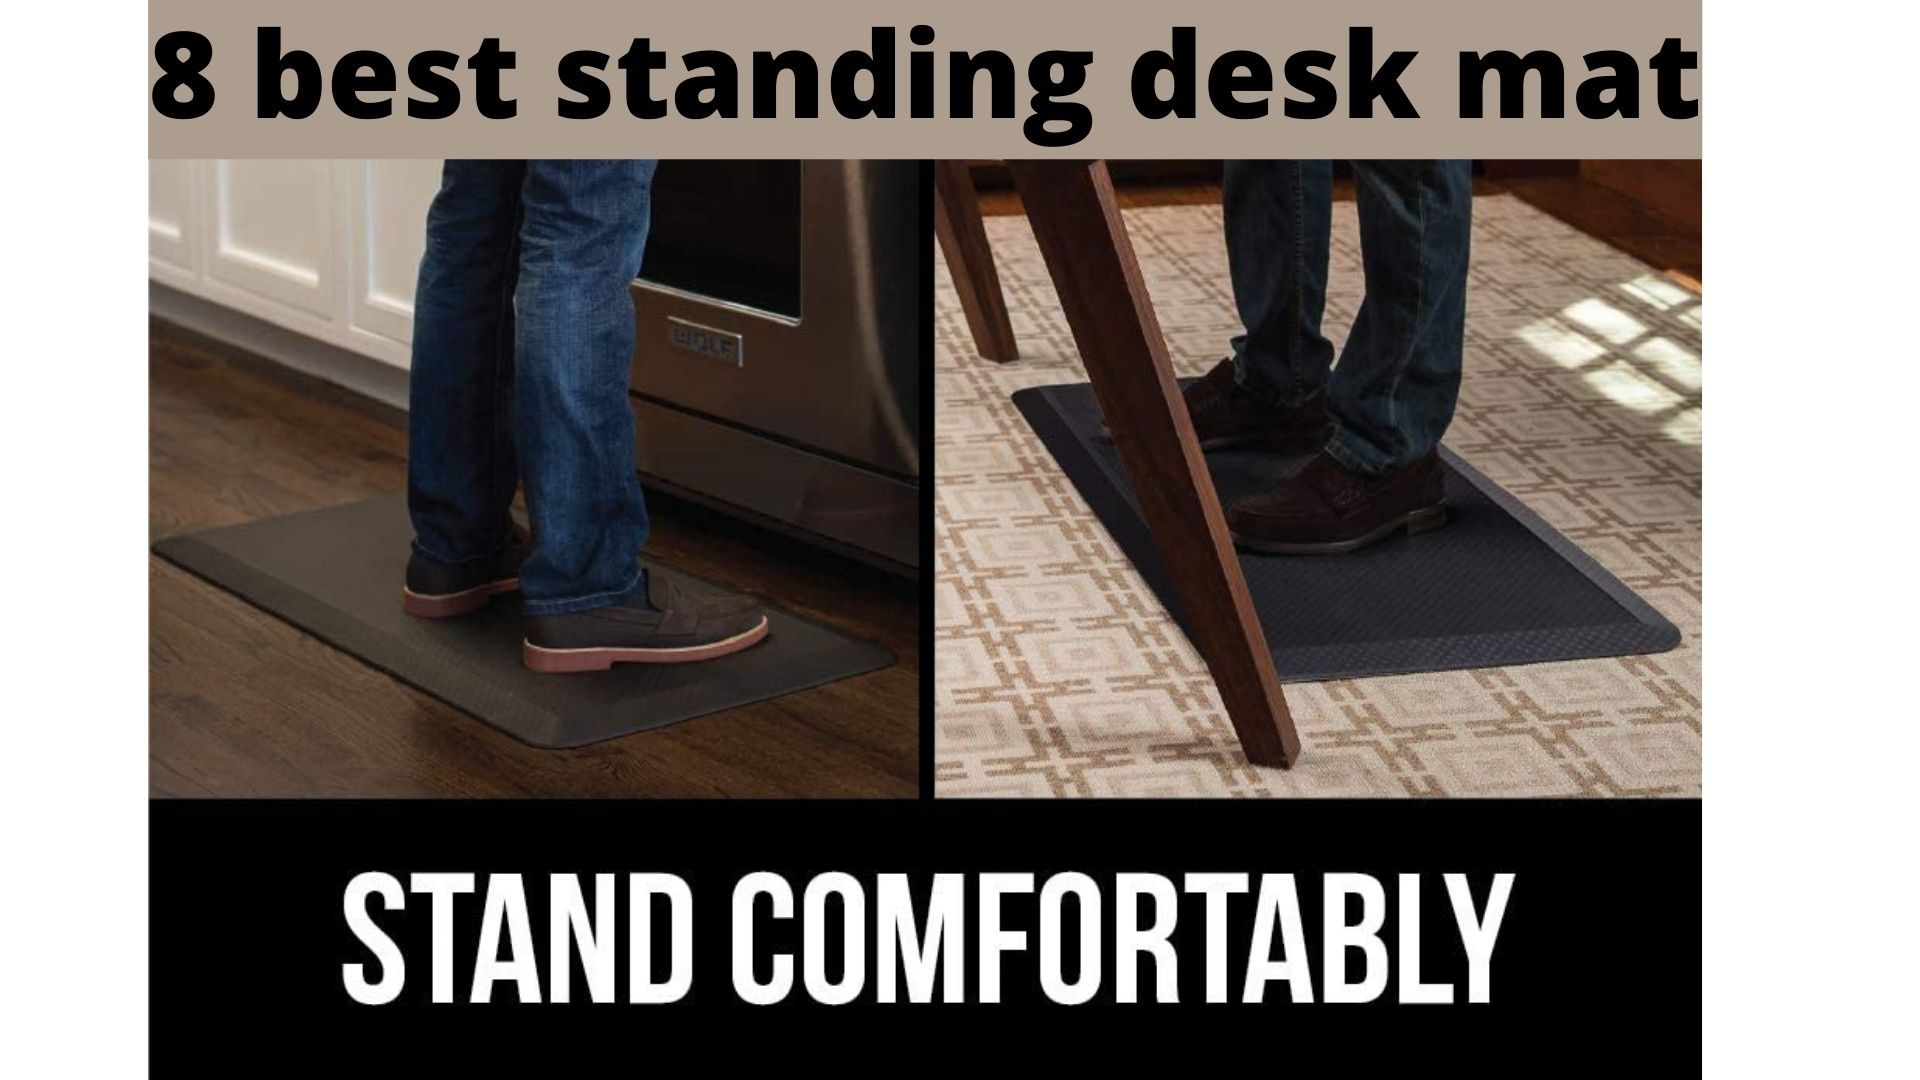 8 best standing desk mat